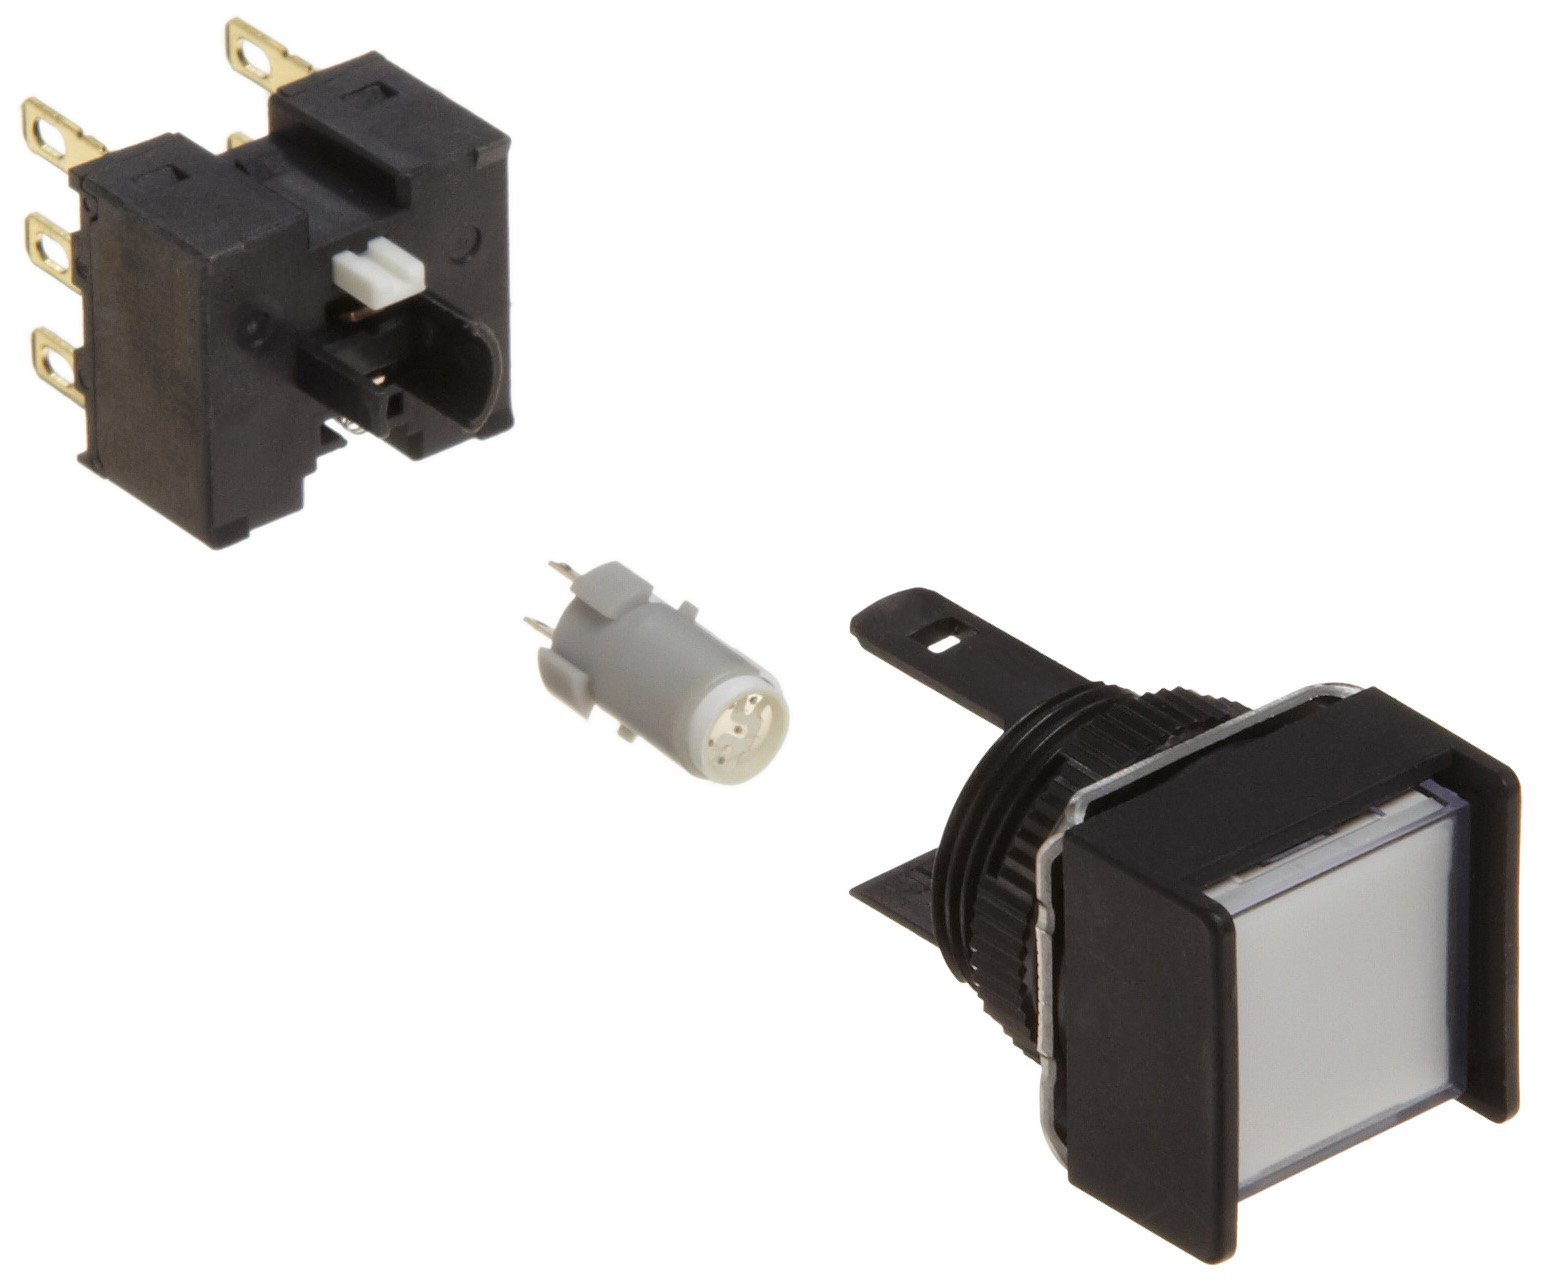 Omron A165L-AWA-24D-2 Two Way Guard Type Pushbutton and Switch, Solder Terminal, IP65 Oil-Resistant, 16mm Mounting Aperture, LED Lighted, Alternate Operation, Square, White, 24 VDC Rated Voltage, Double Pole Double Throw Contacts